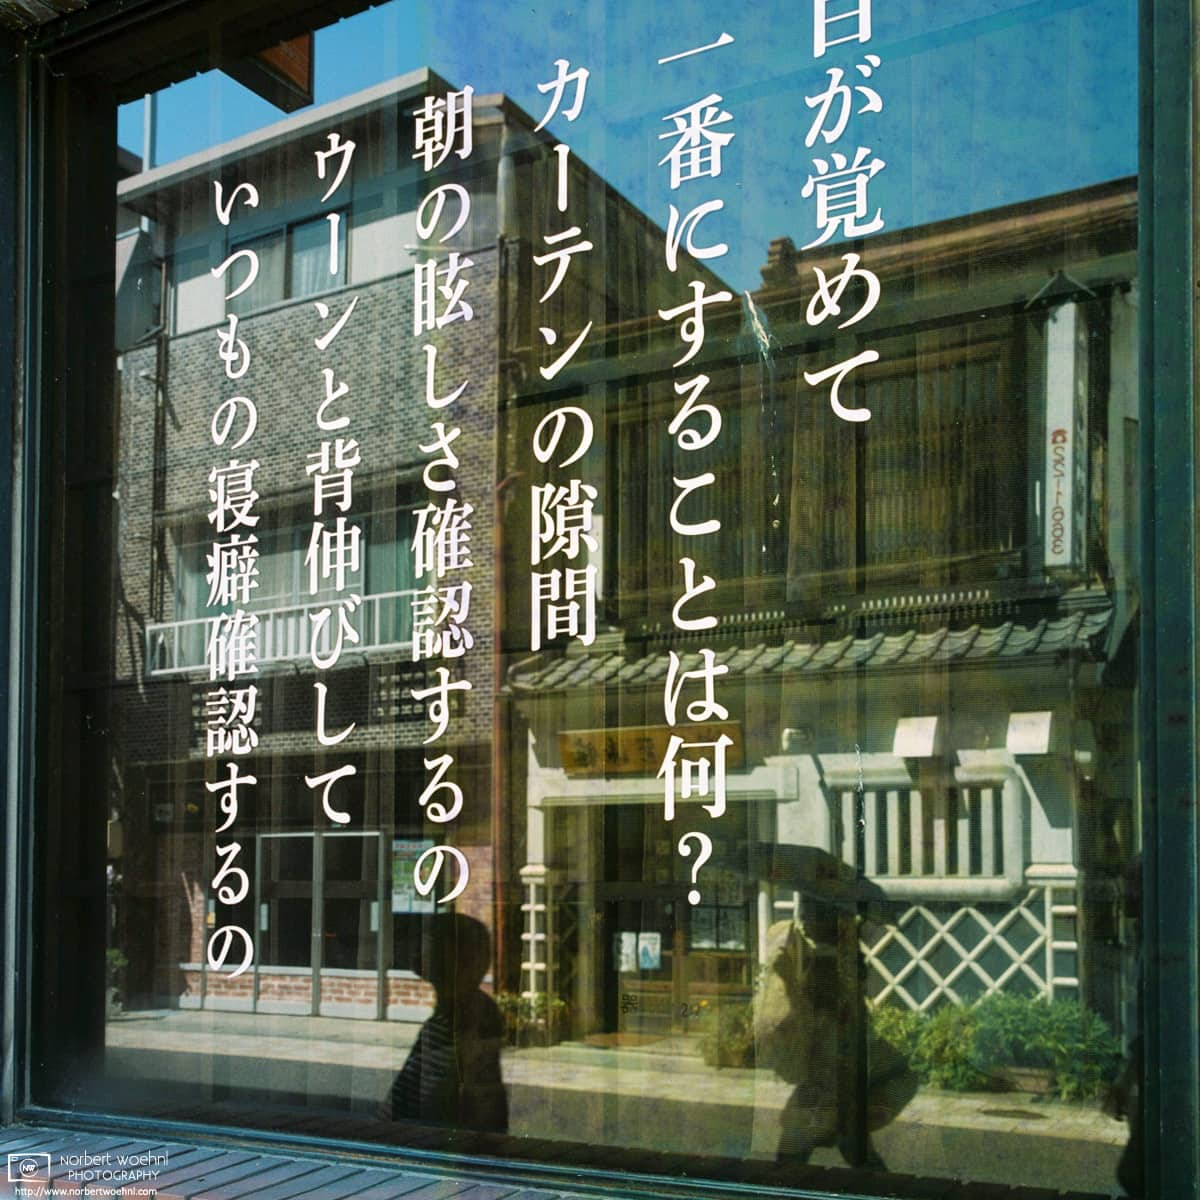 A reflection of a street scene from a shop window in Ueda City in Nagano Prefecture, Japan.